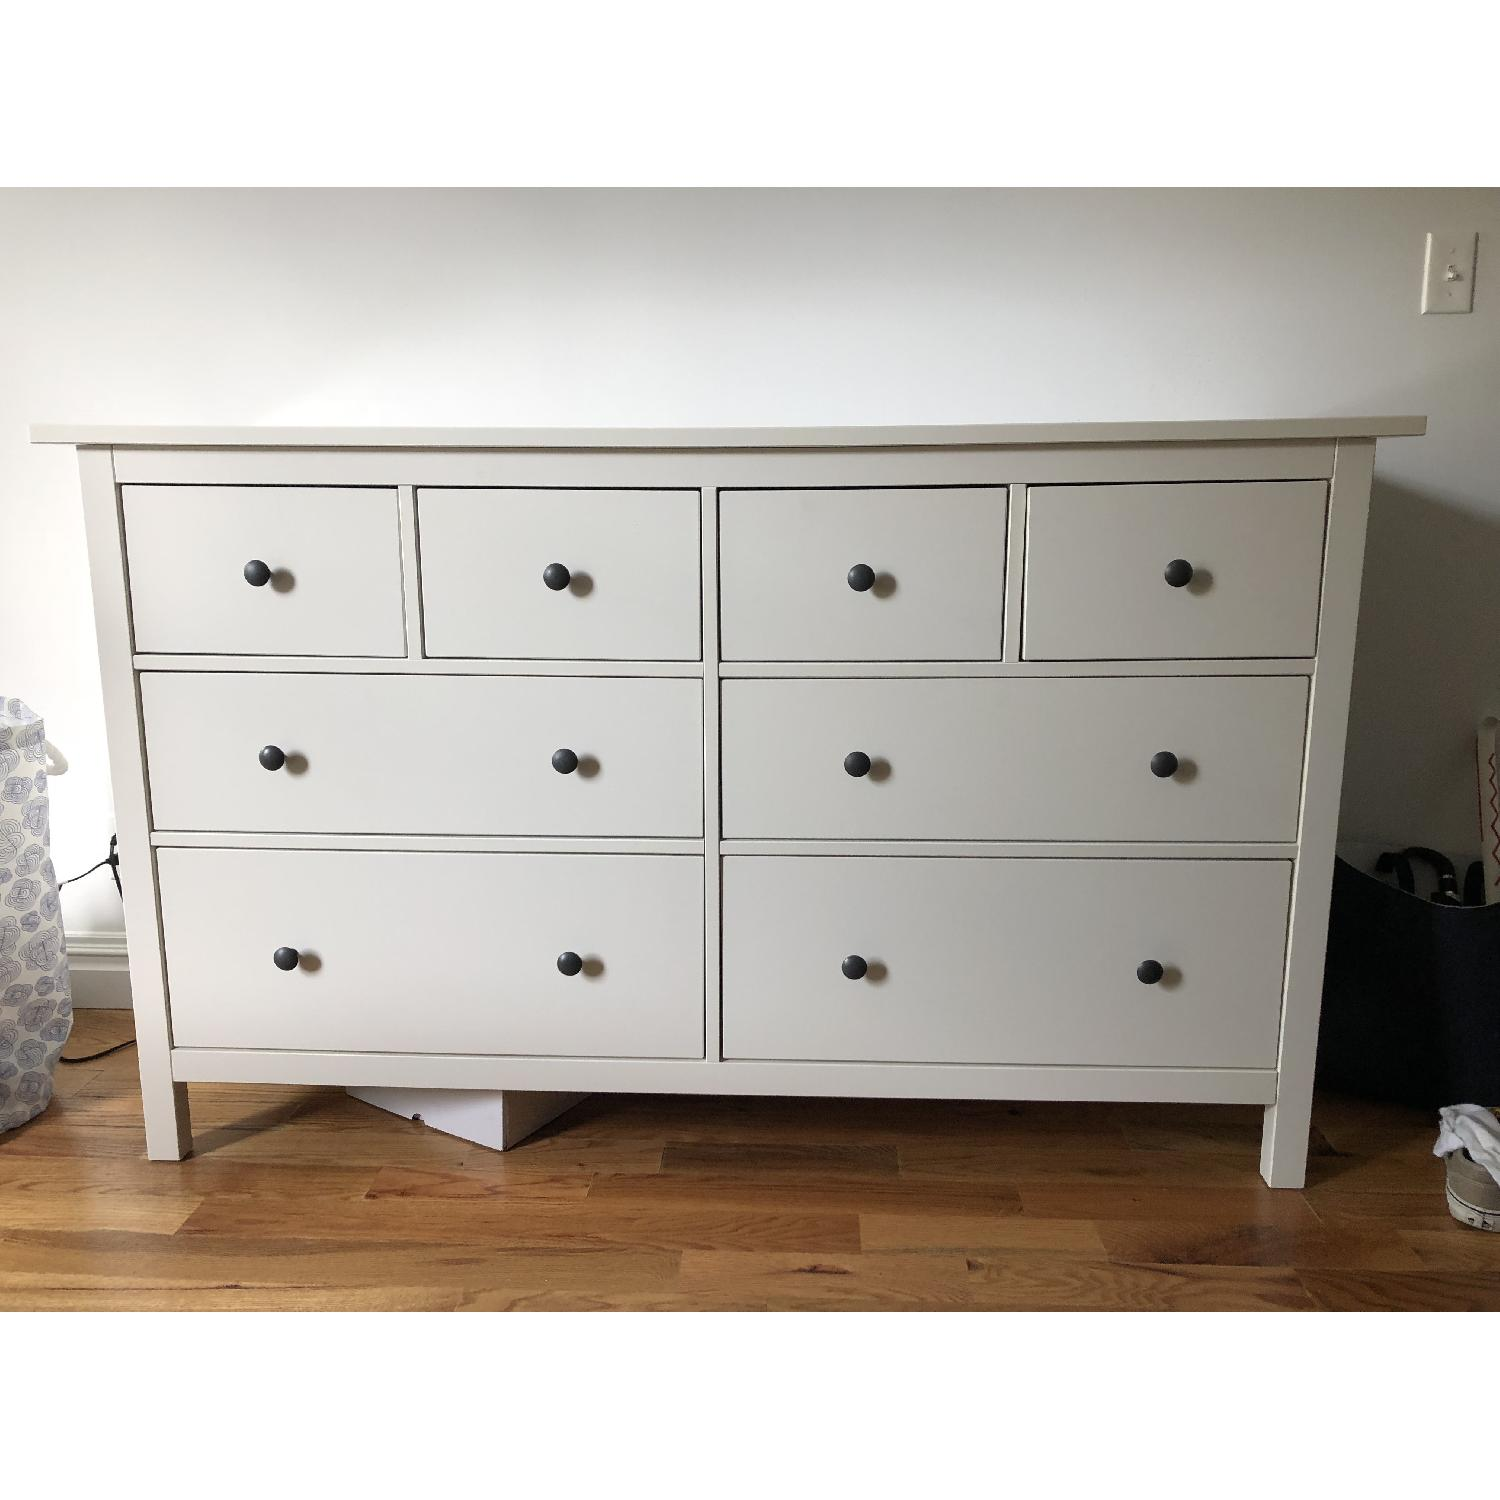 ikea hemnes dresser ideas best drawer image of